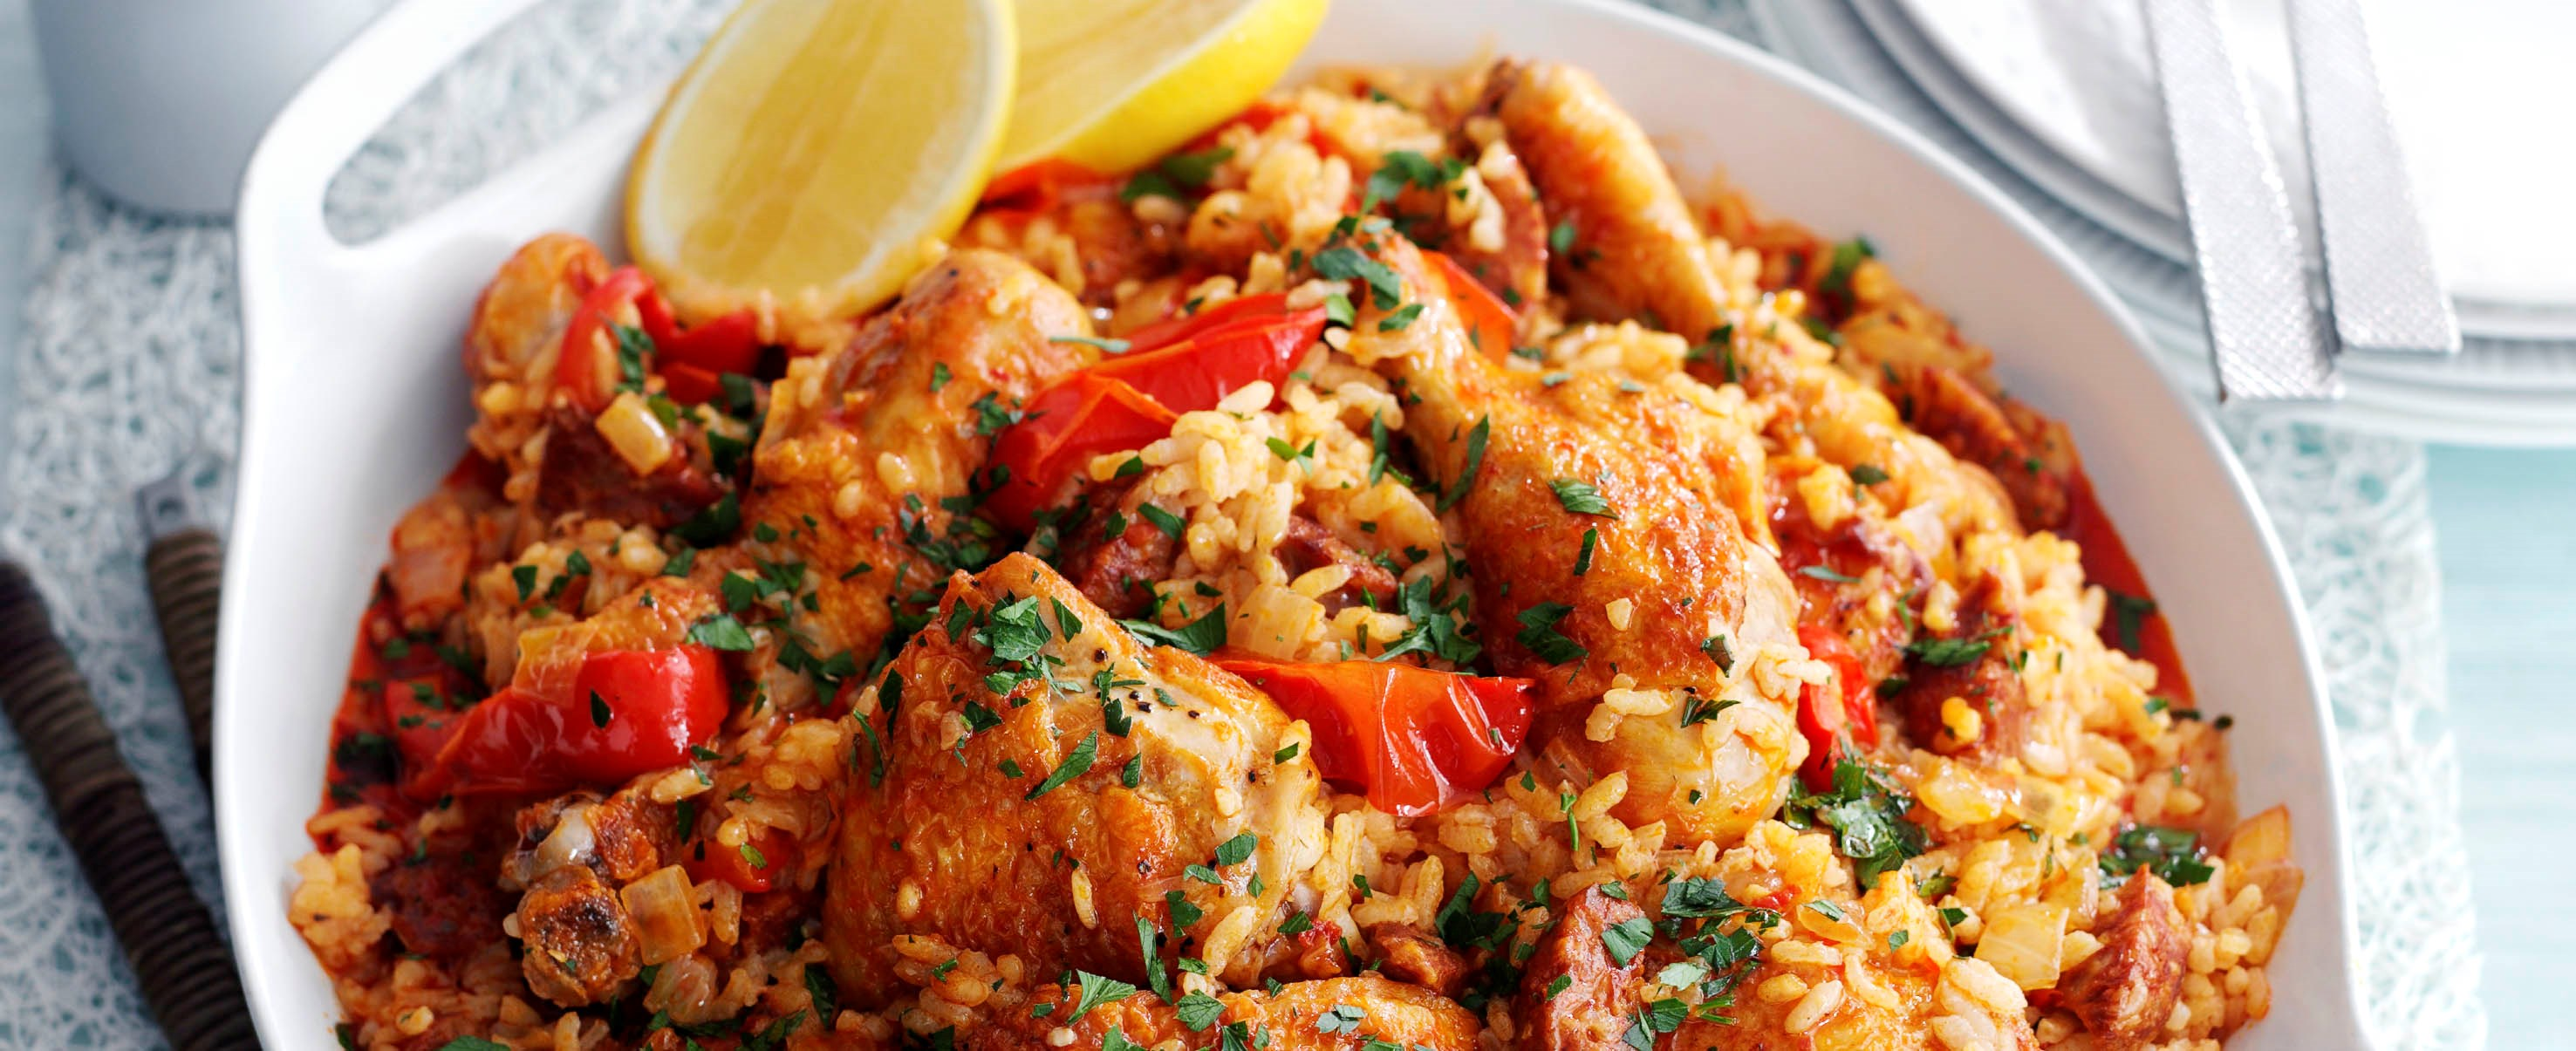 home meat and poultry baked spanish rice with chicken and chorizo